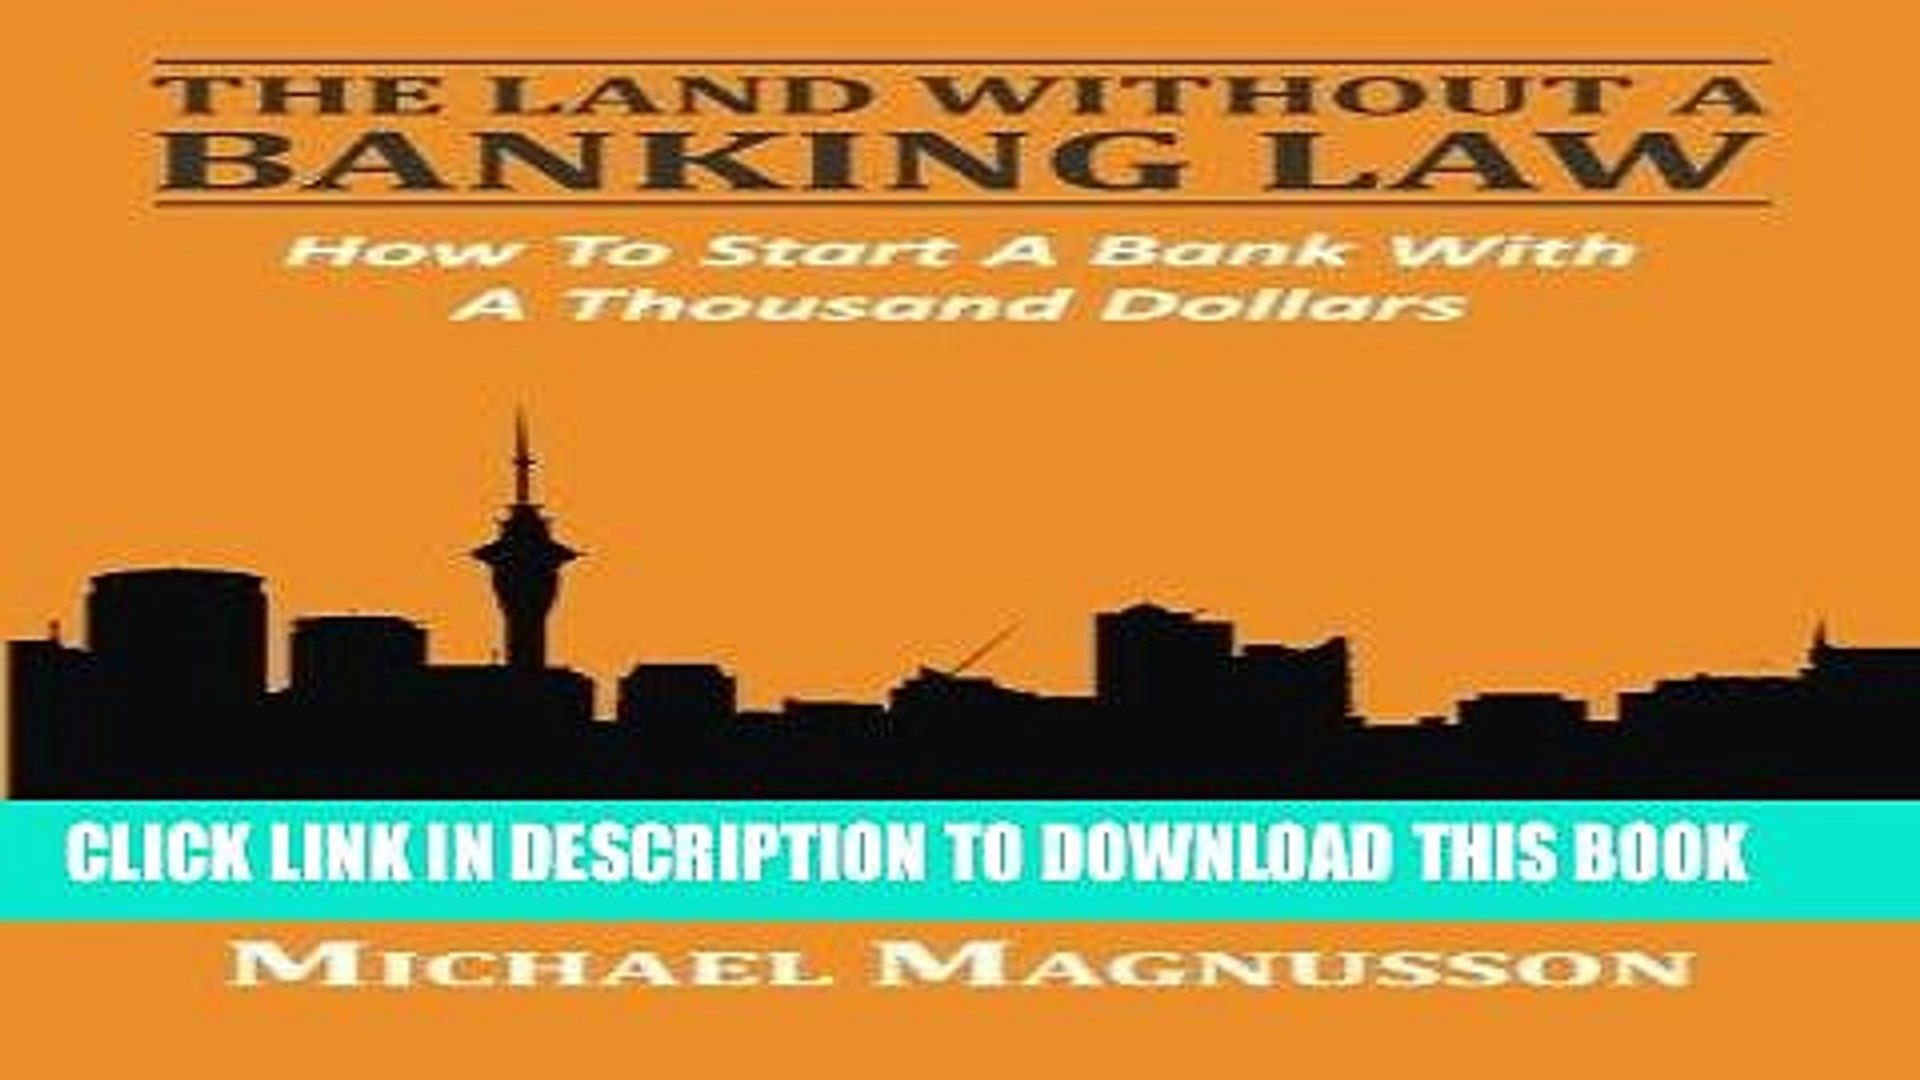 [READ] Mobi The Land Without A Banking Law: How To Start A Bank With A Thousand Dollars Free